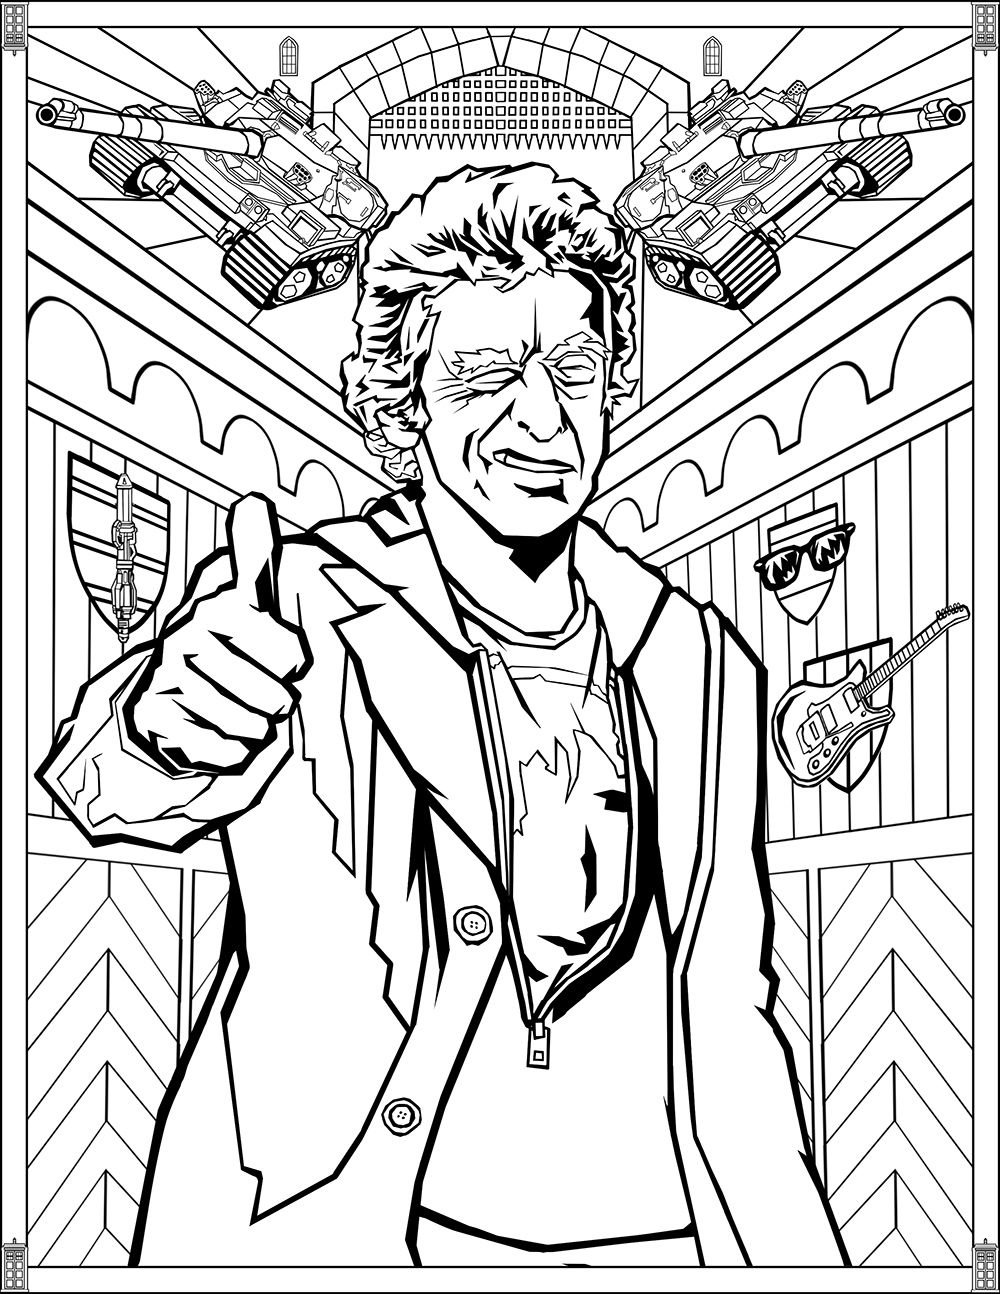 Doctor Who: Wibbly Wobbly Timey Wimey Coloring Pages [Printables]